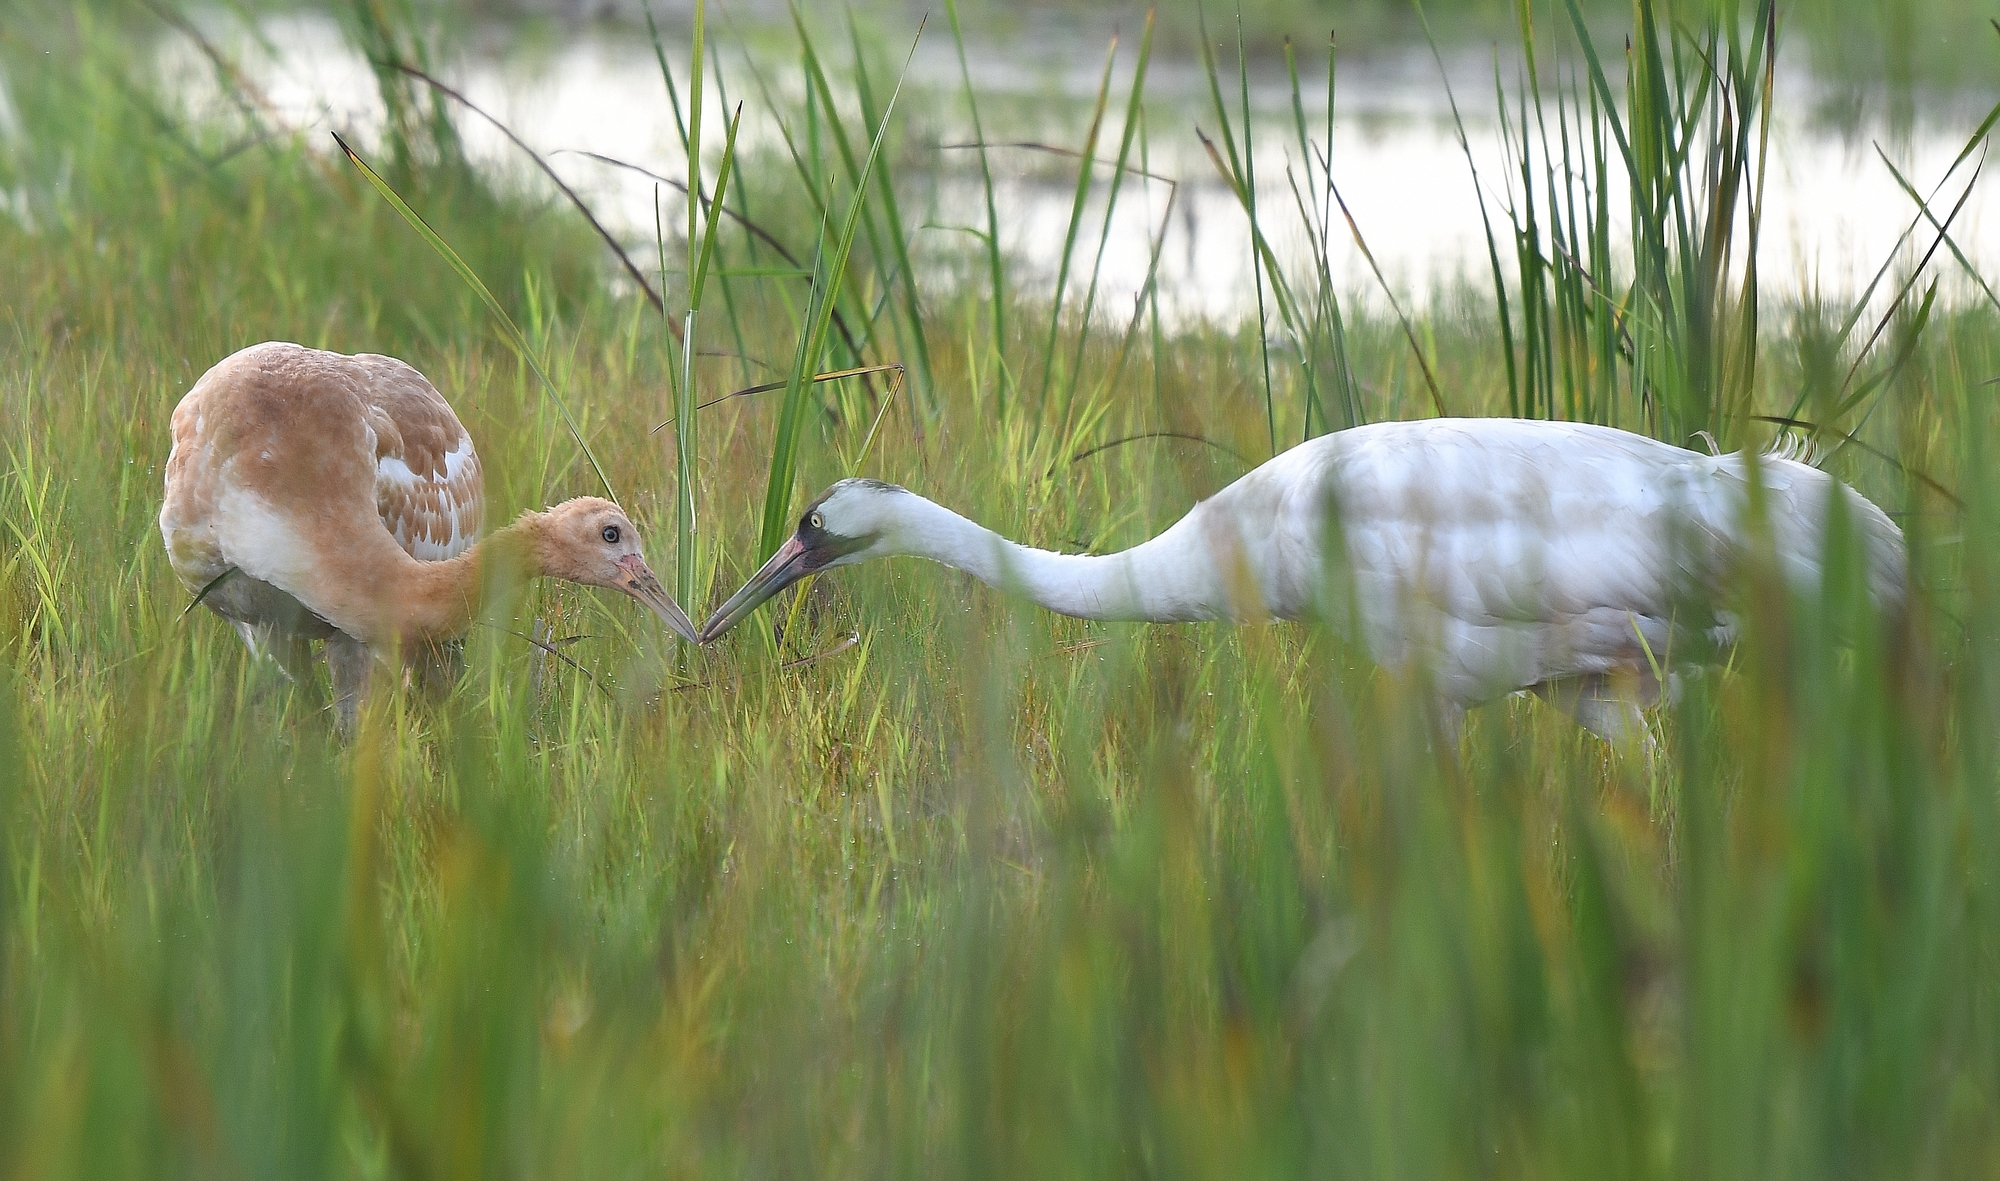 whooping crane and her chick at Horicon National Wildlife Refuge